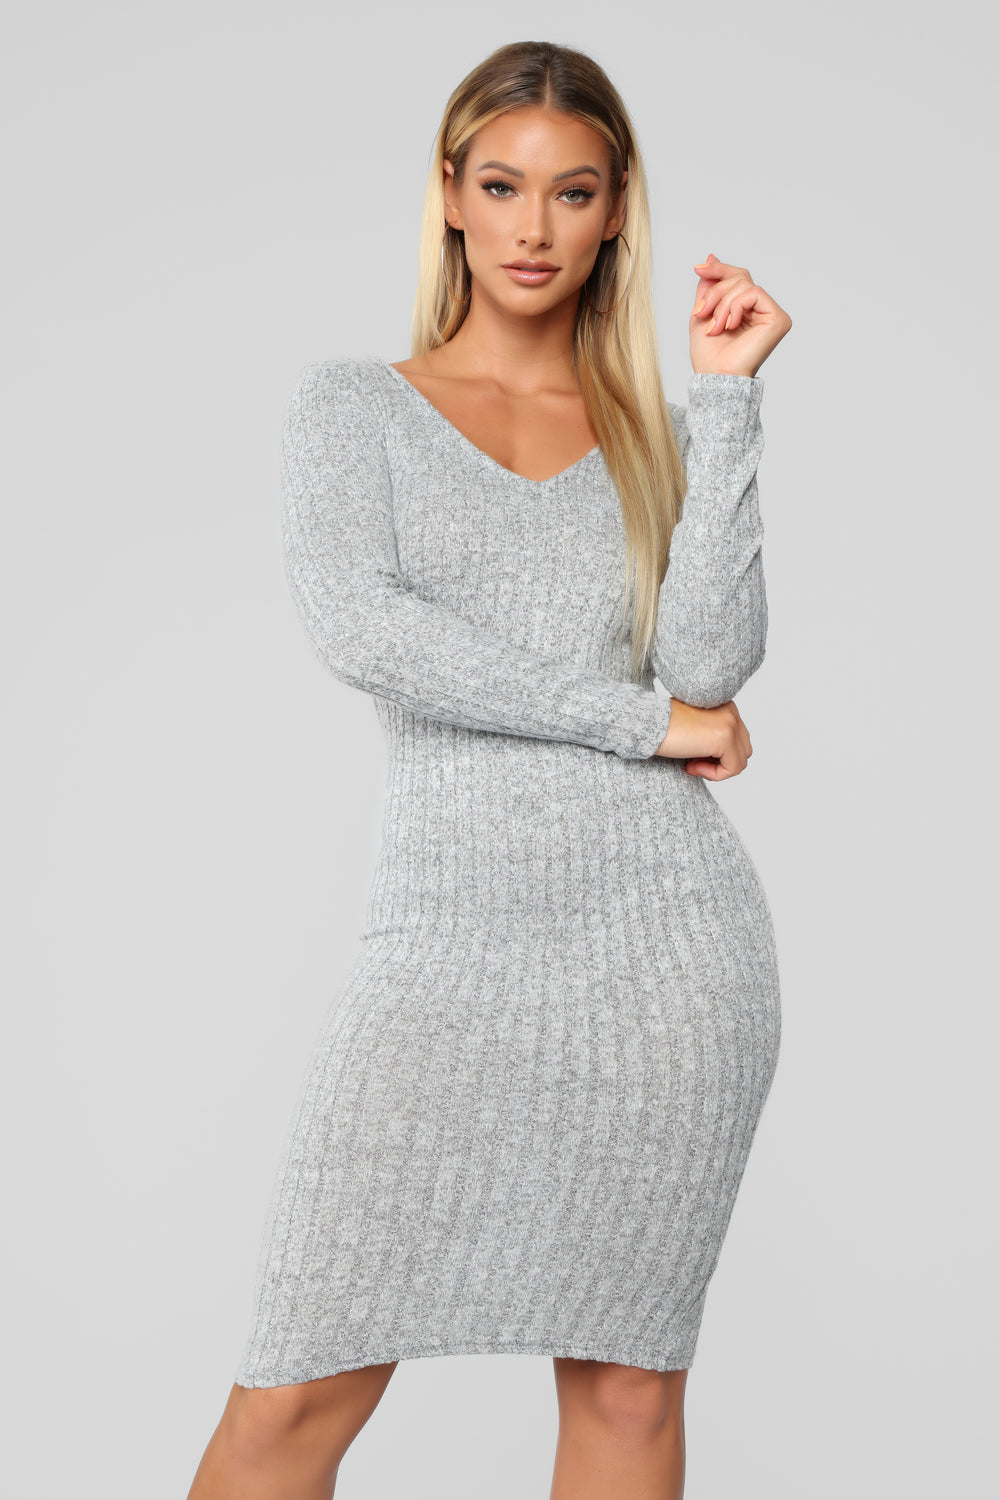 For The Thrill Of It Midi Dress - Heather Grey